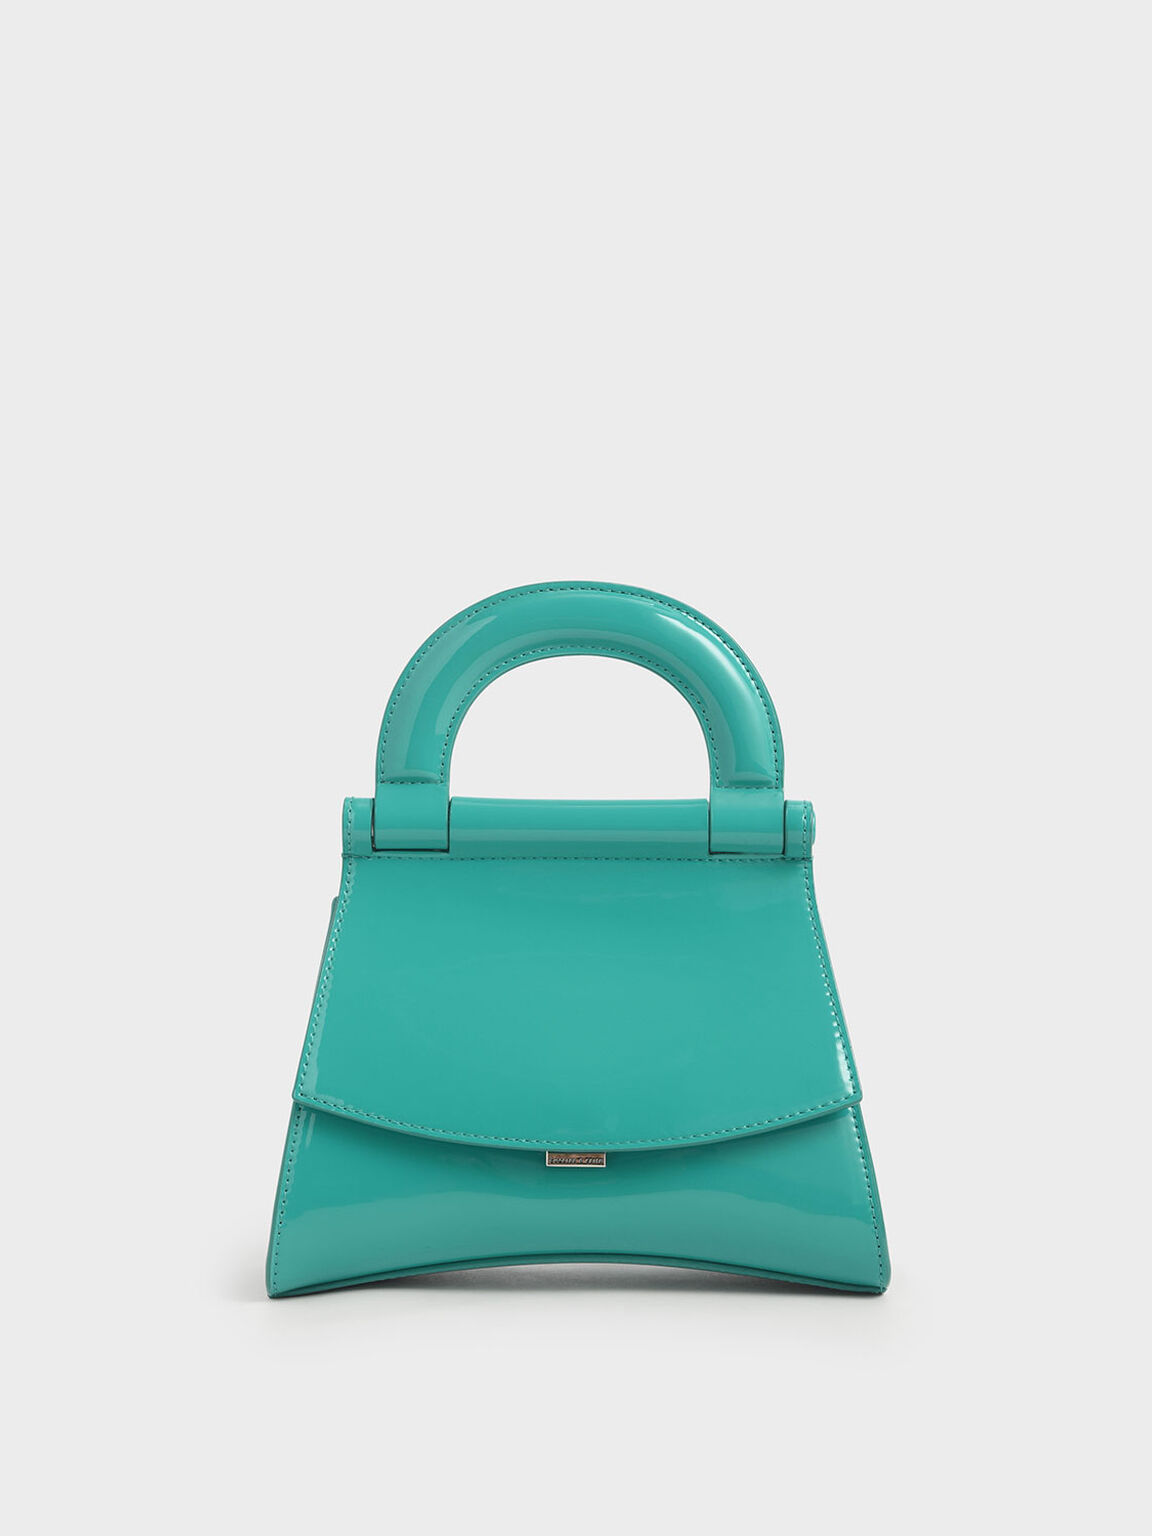 Patent Top Handle Bag, Teal, hi-res